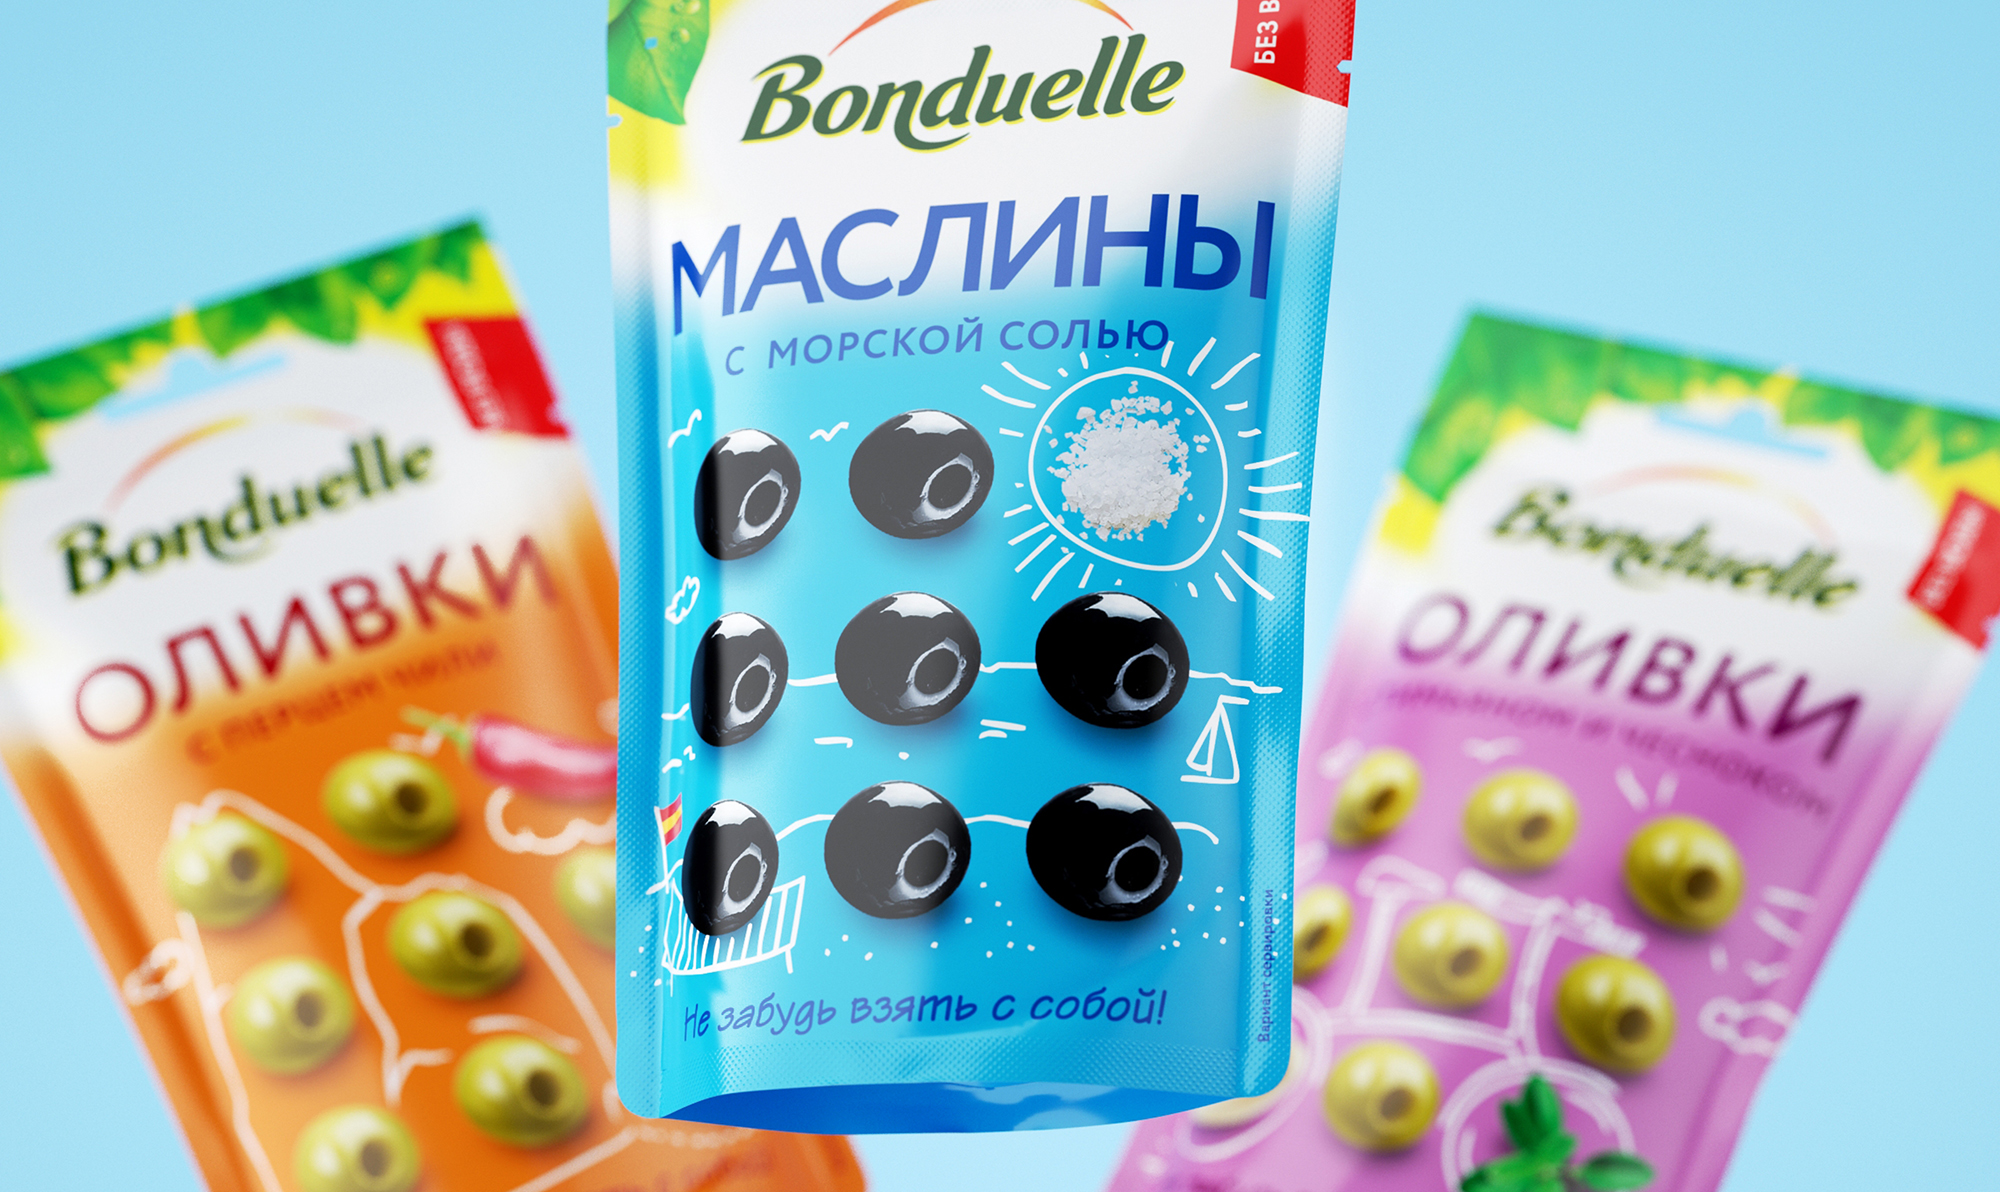 Clёver Branding and Bonduelle Help Nutrition to all Healthy Lifestyle Lovers